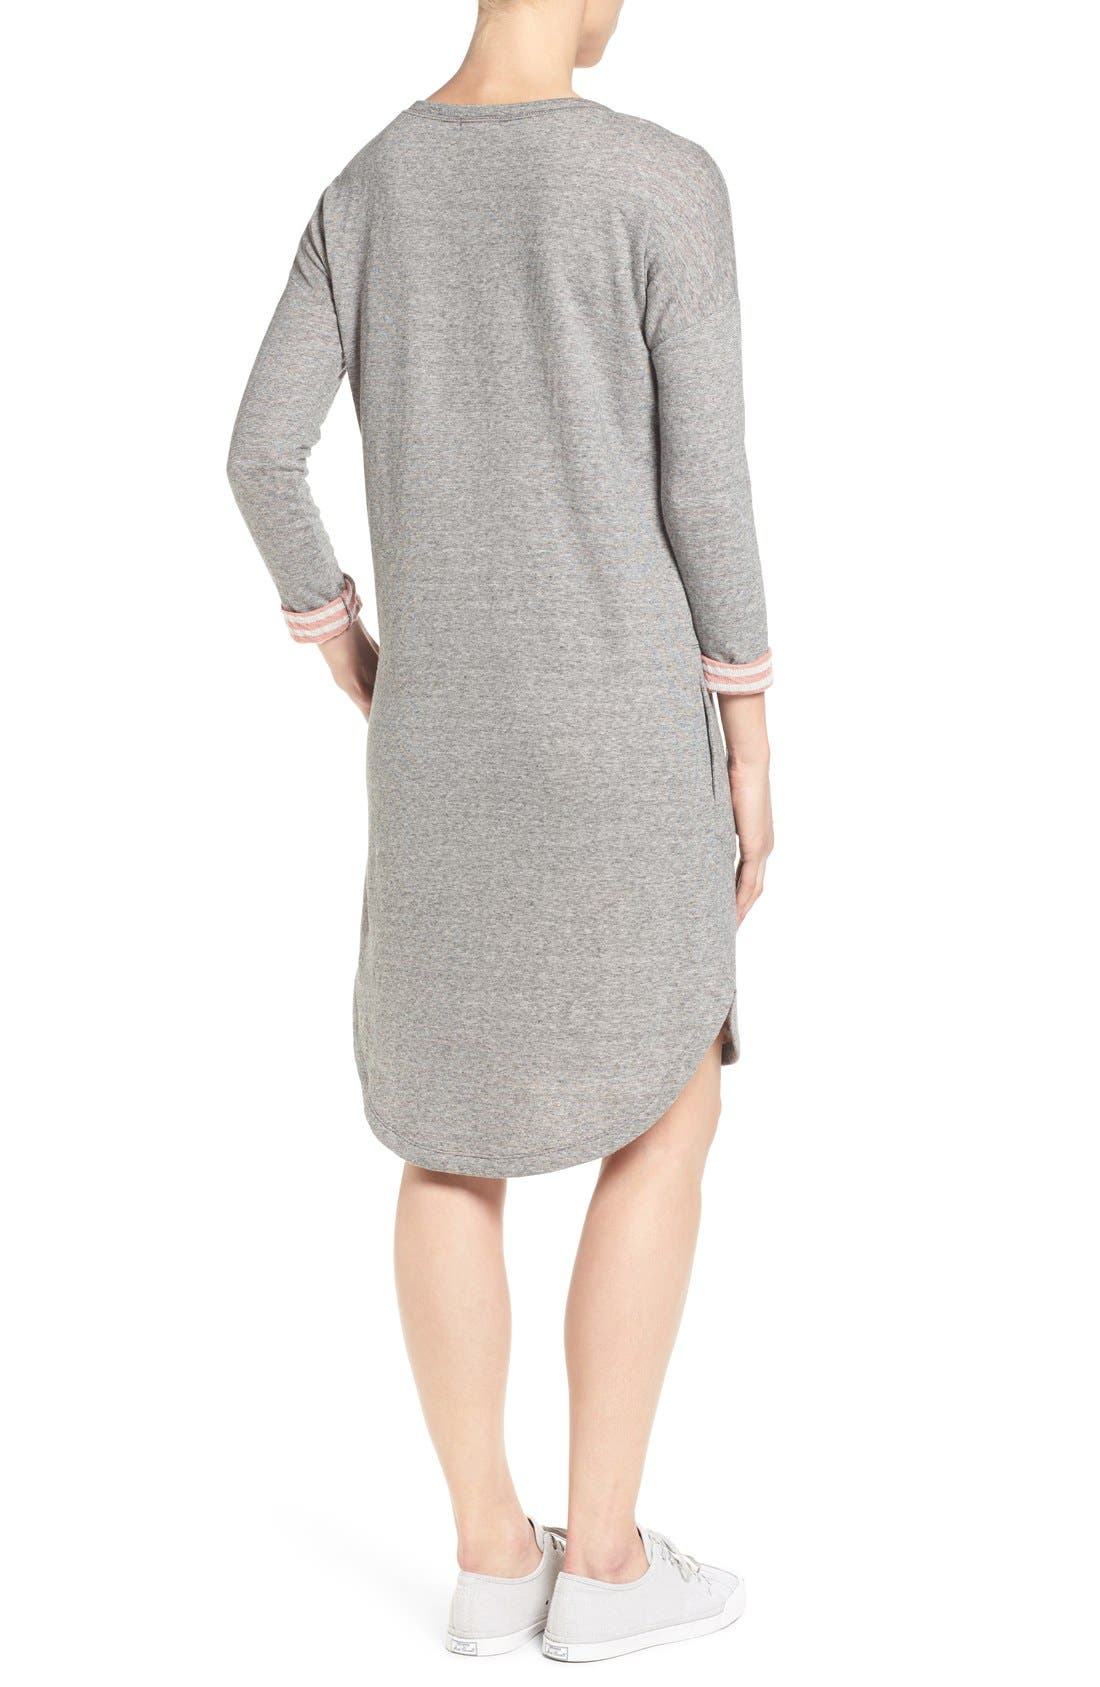 Contrast Cuff Double Knit Dress,                             Alternate thumbnail 4, color,                             030